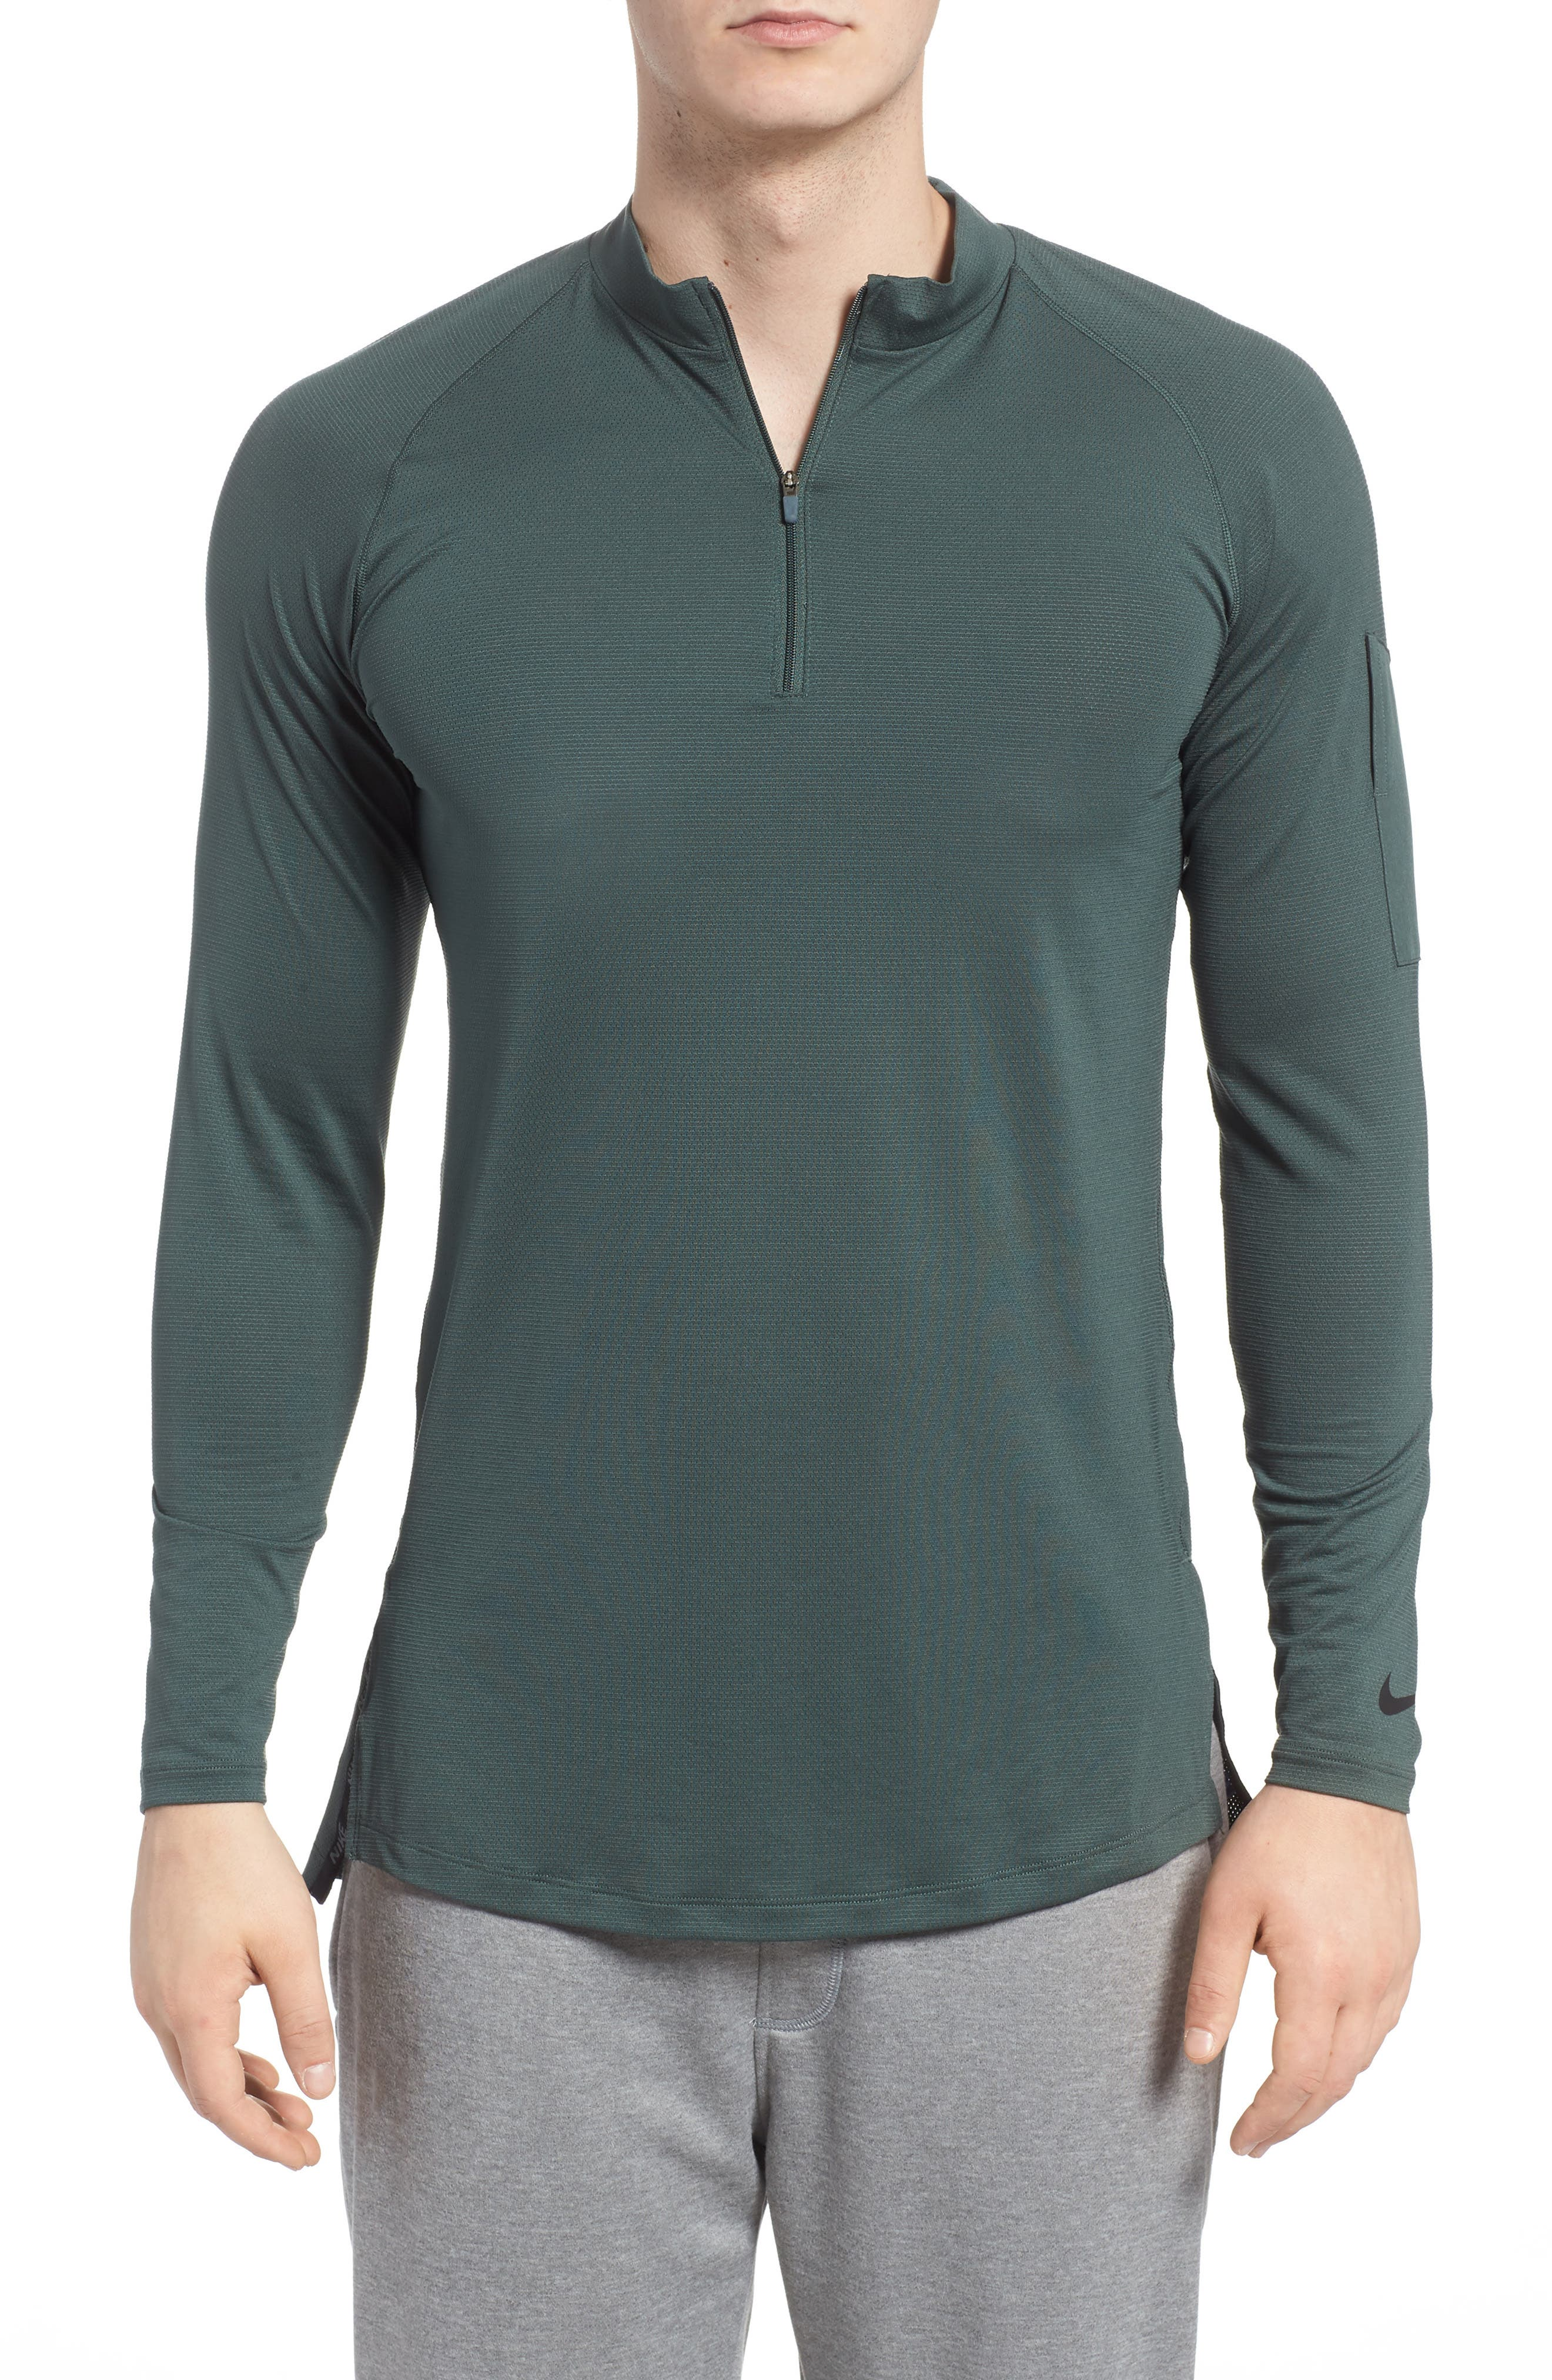 NIKE Pro Fitted Utility Dry Tech Sport Top, Main, color, VINTAGE GREEN/ BLACK